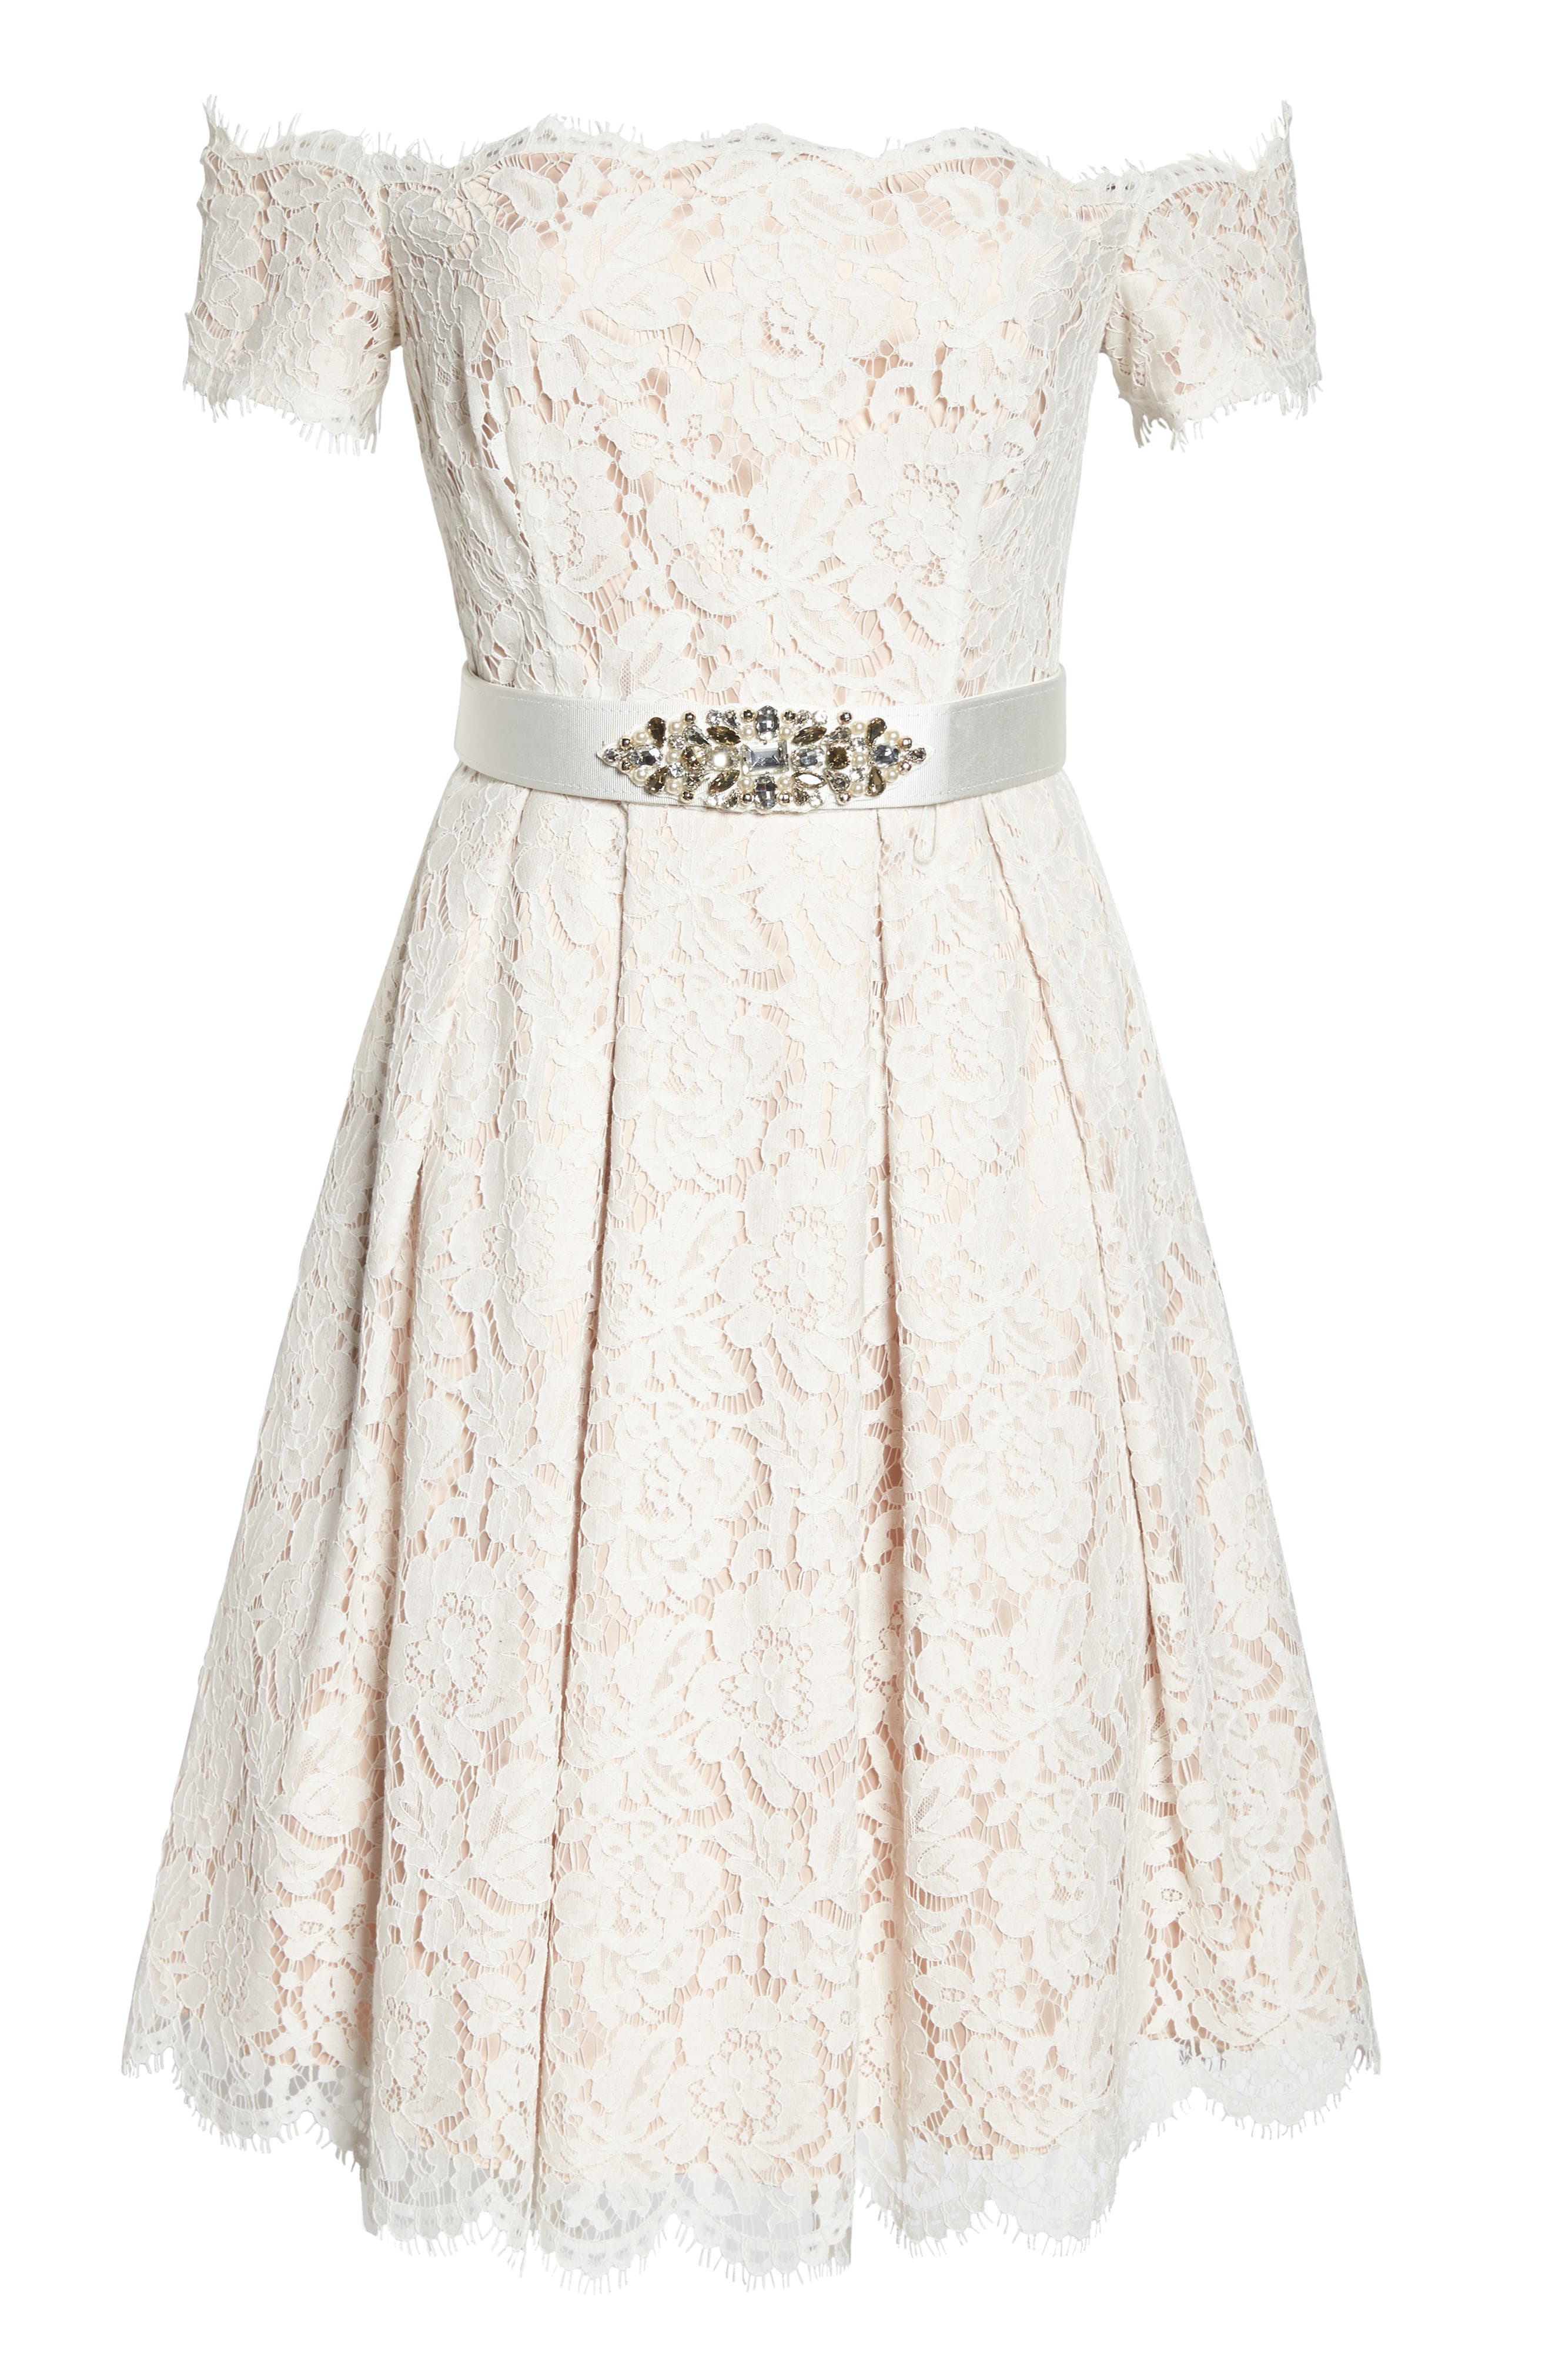 Embellished Lace Fit & Flare Dress,                             Alternate thumbnail 6, color,                             Ivory